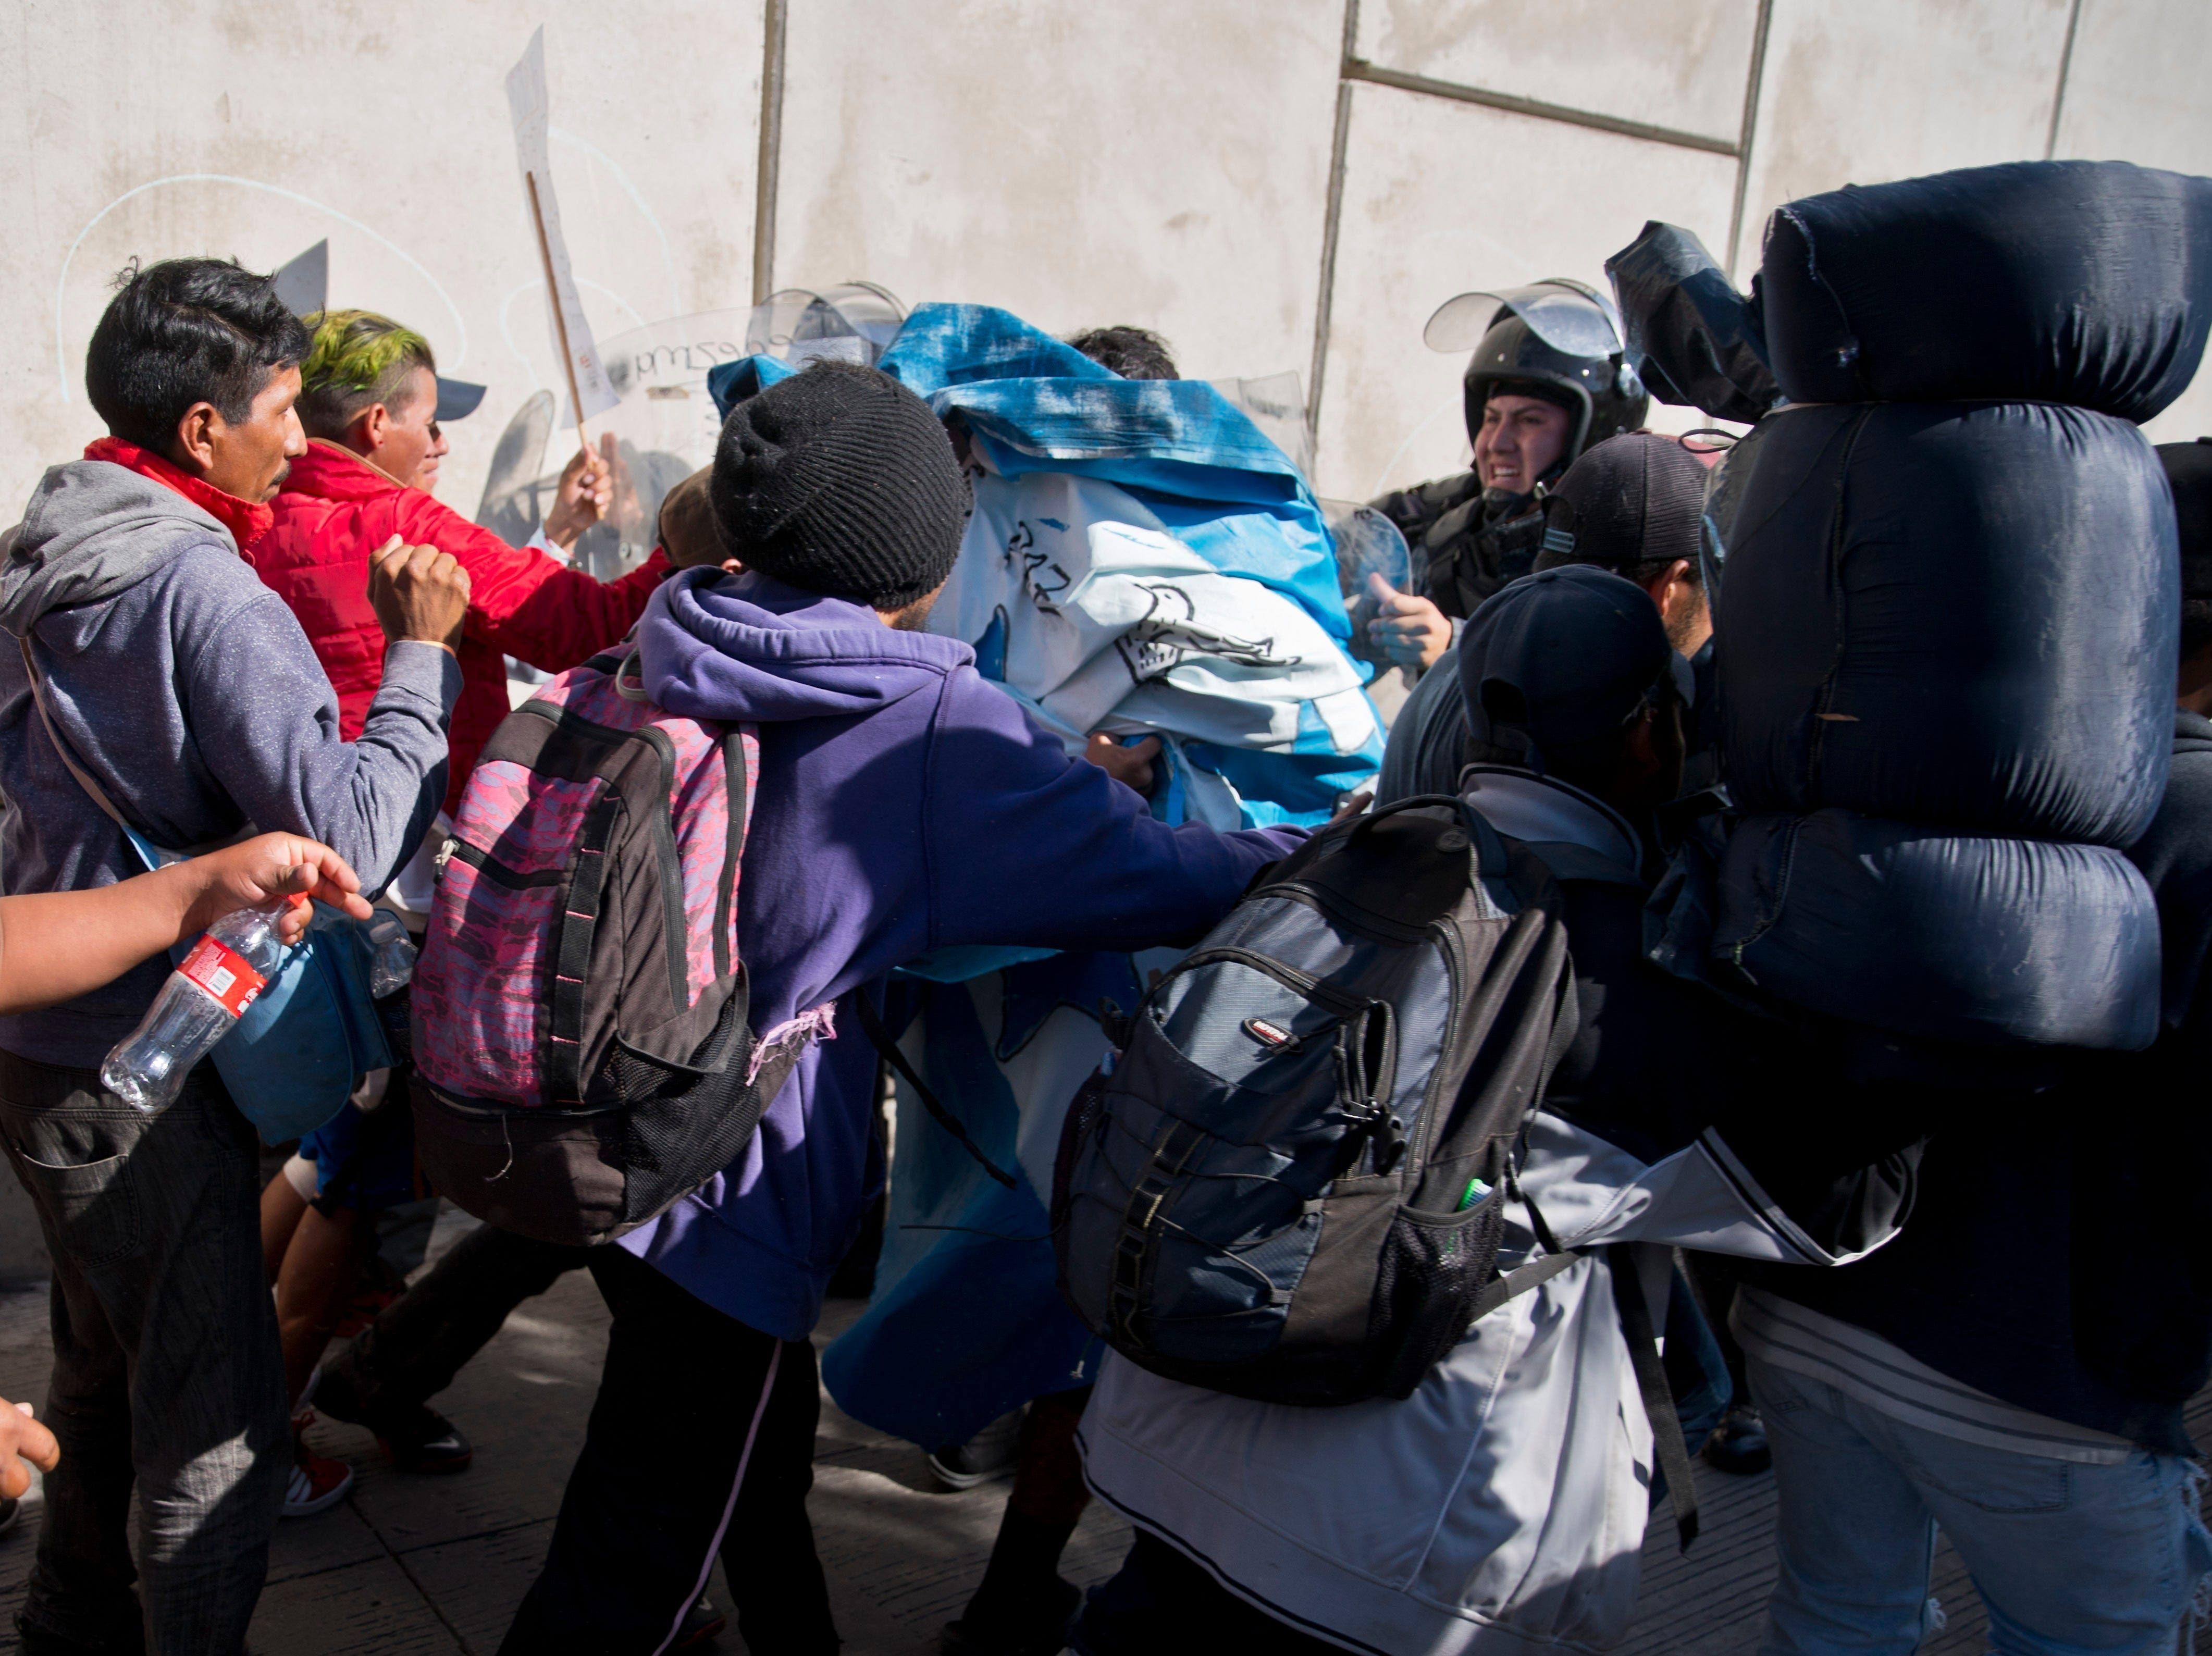 Migrants push past Mexican police at the Chaparral border crossing in Tijuana, Mexico, Nov. 25, 2018, as they try to reach the United States.